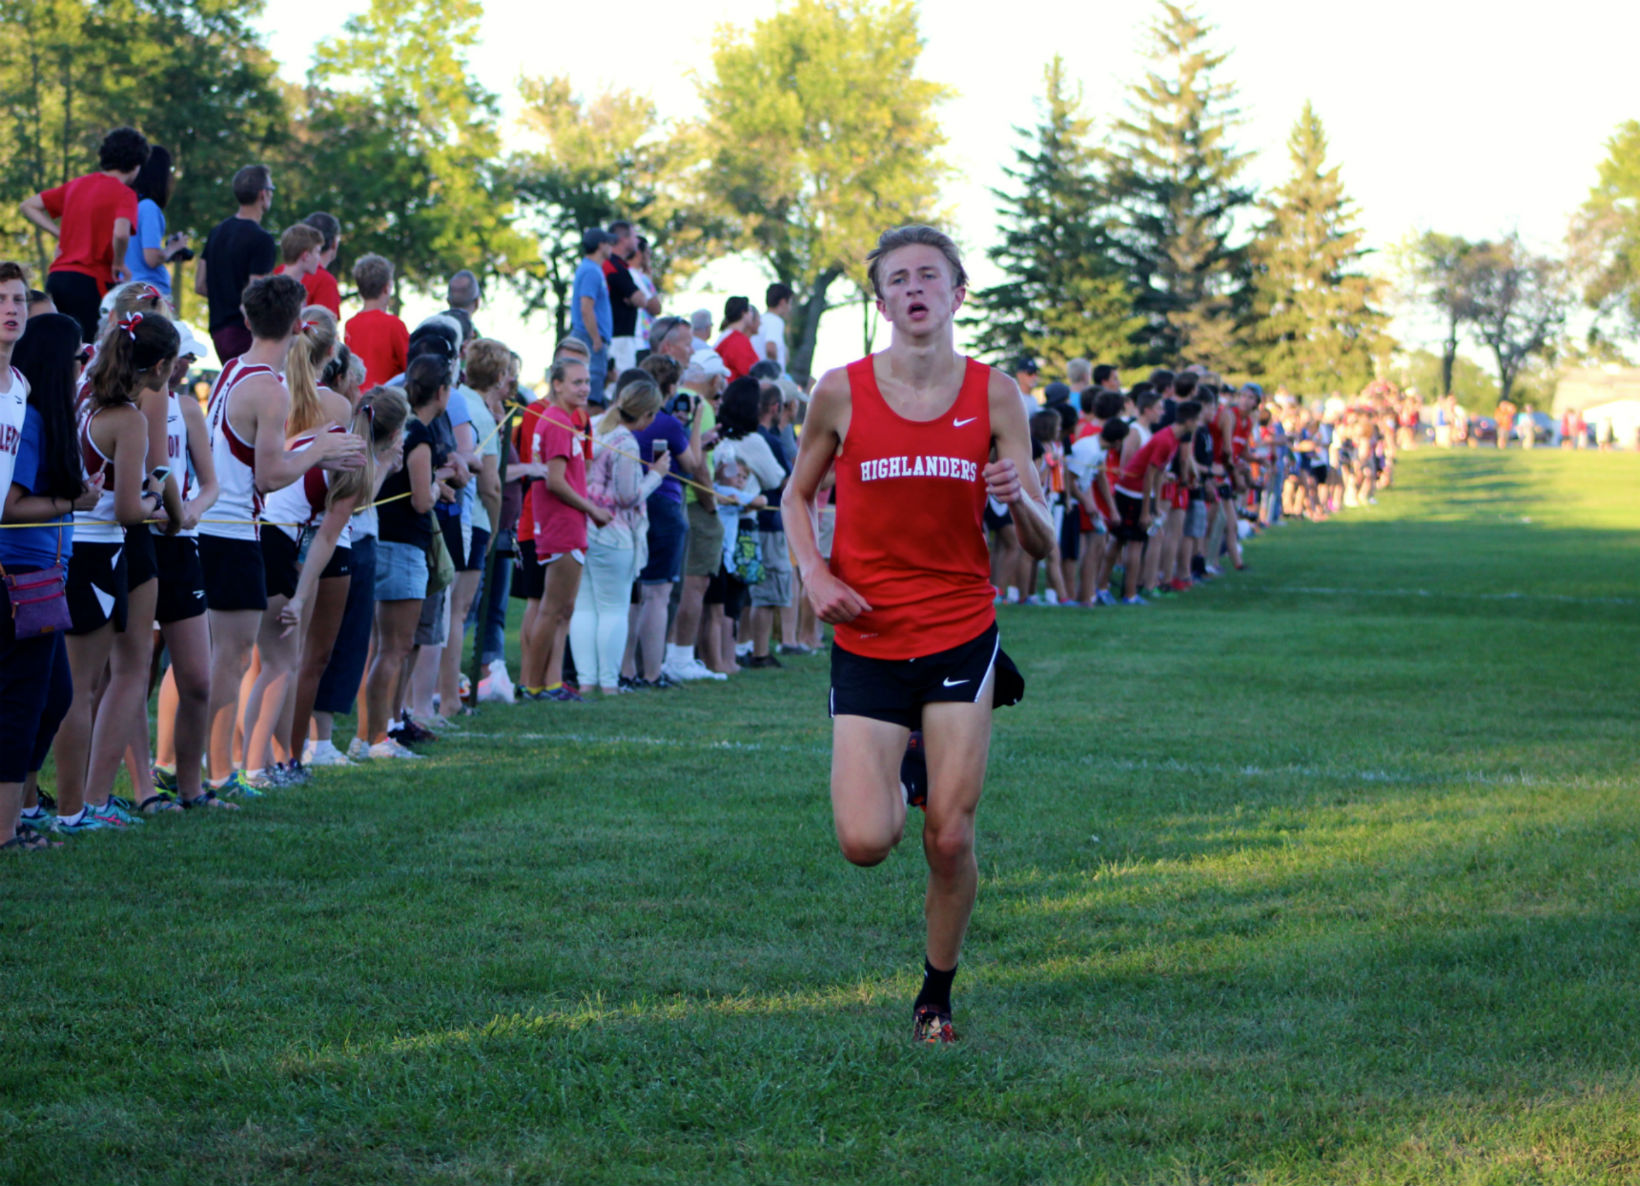 Drew Bosley, sophomore, took second place at the meet. Bosley ran at the state meet last year and greatly improved his time.